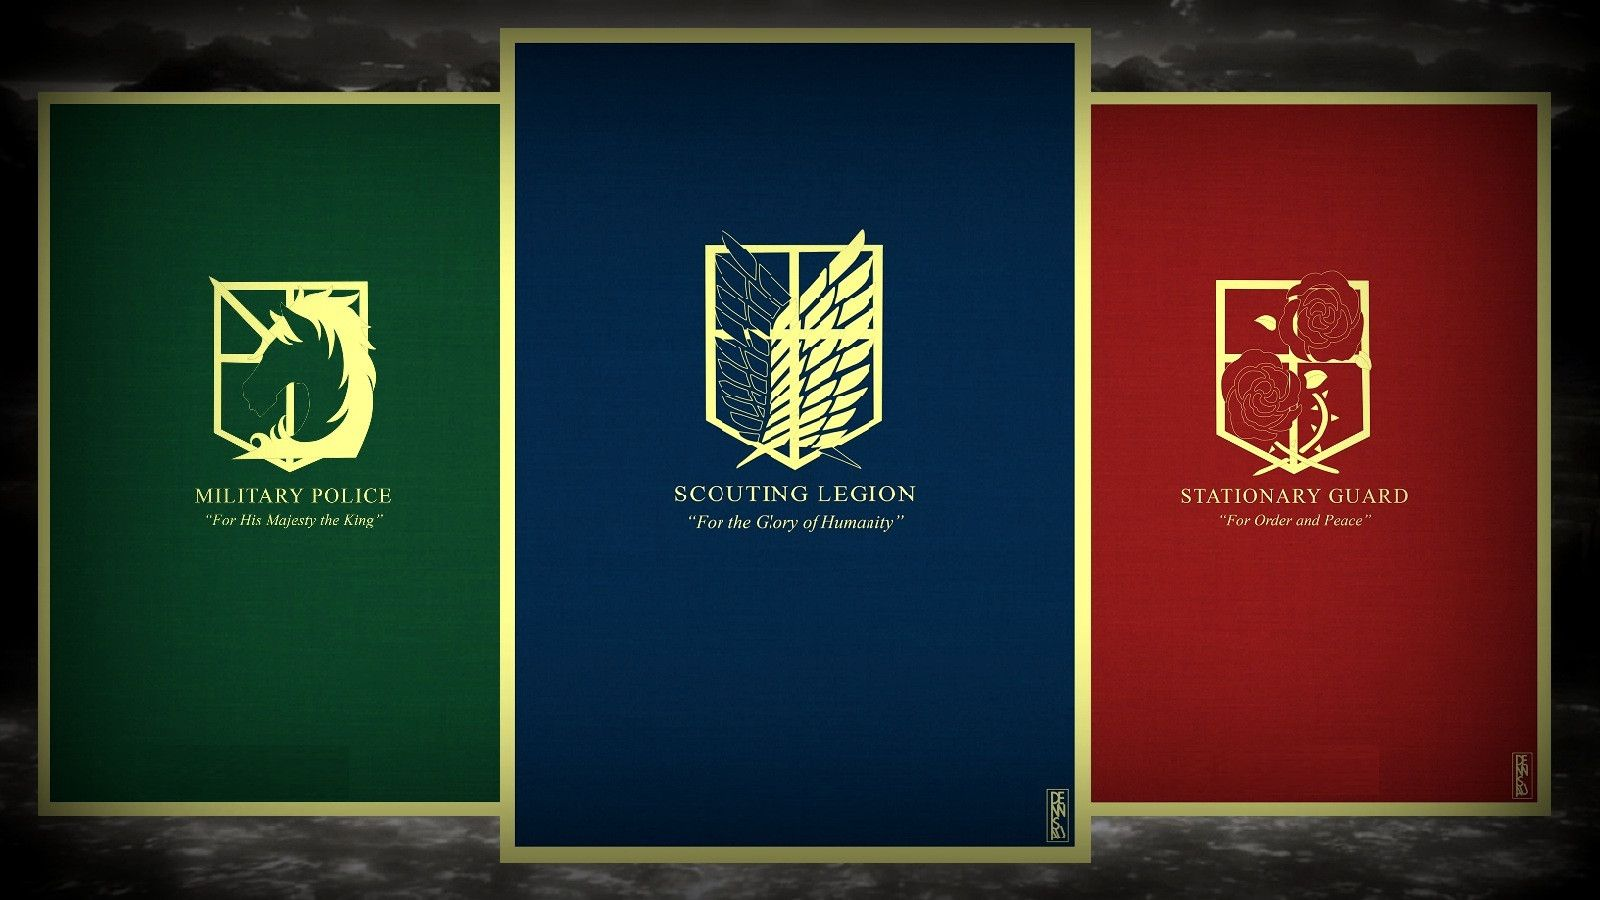 Attack On Titan Scouts Logo Posted By Sarah Anderson